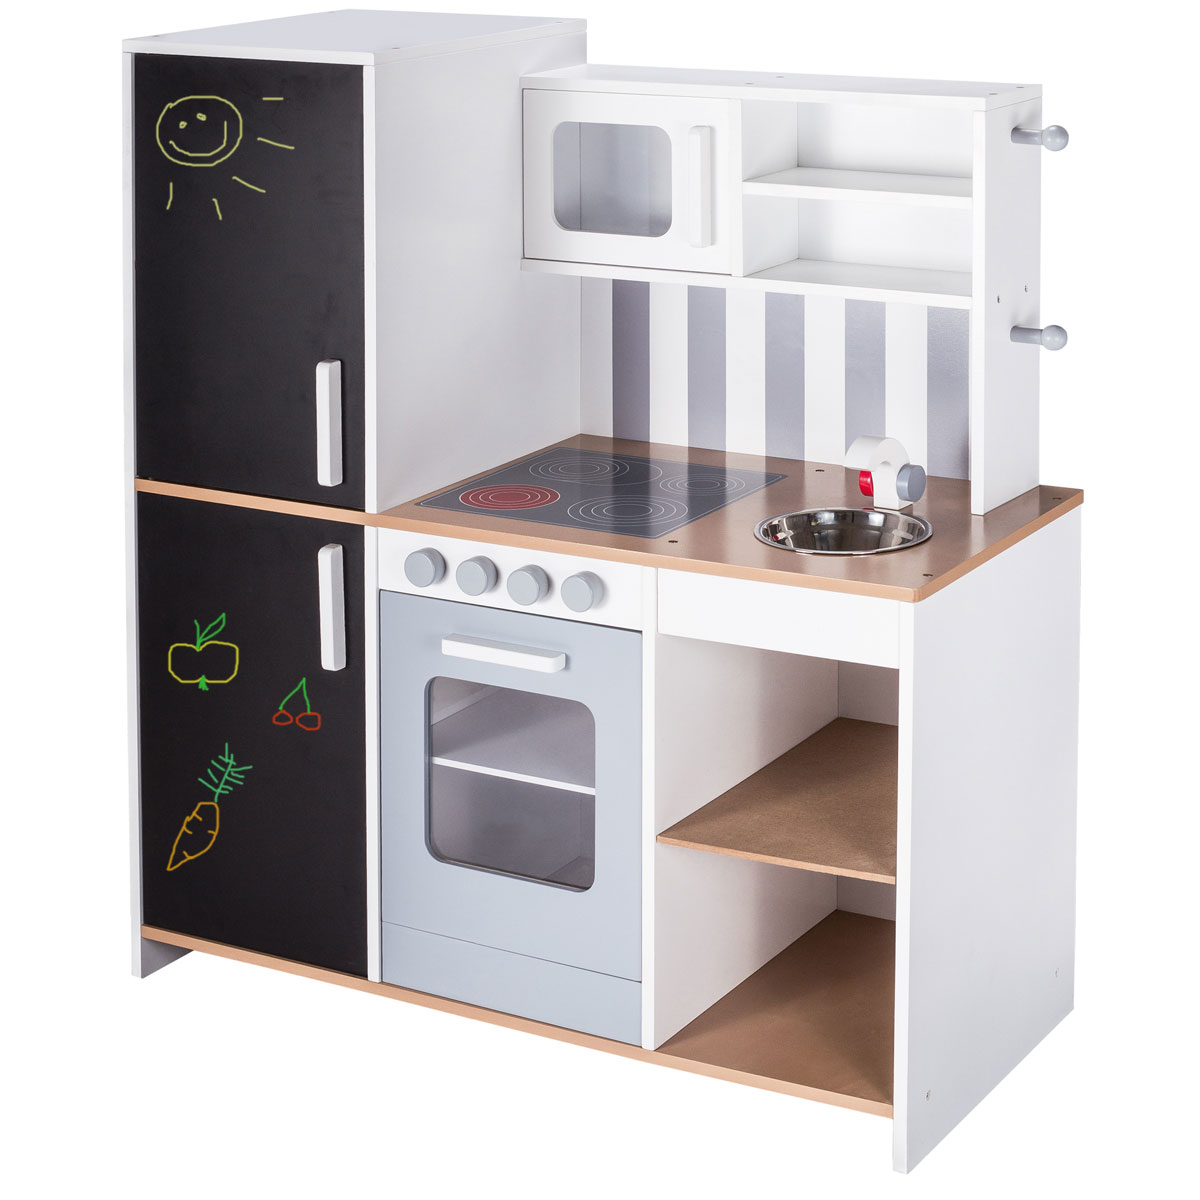 Kitchen Play Set Amazon